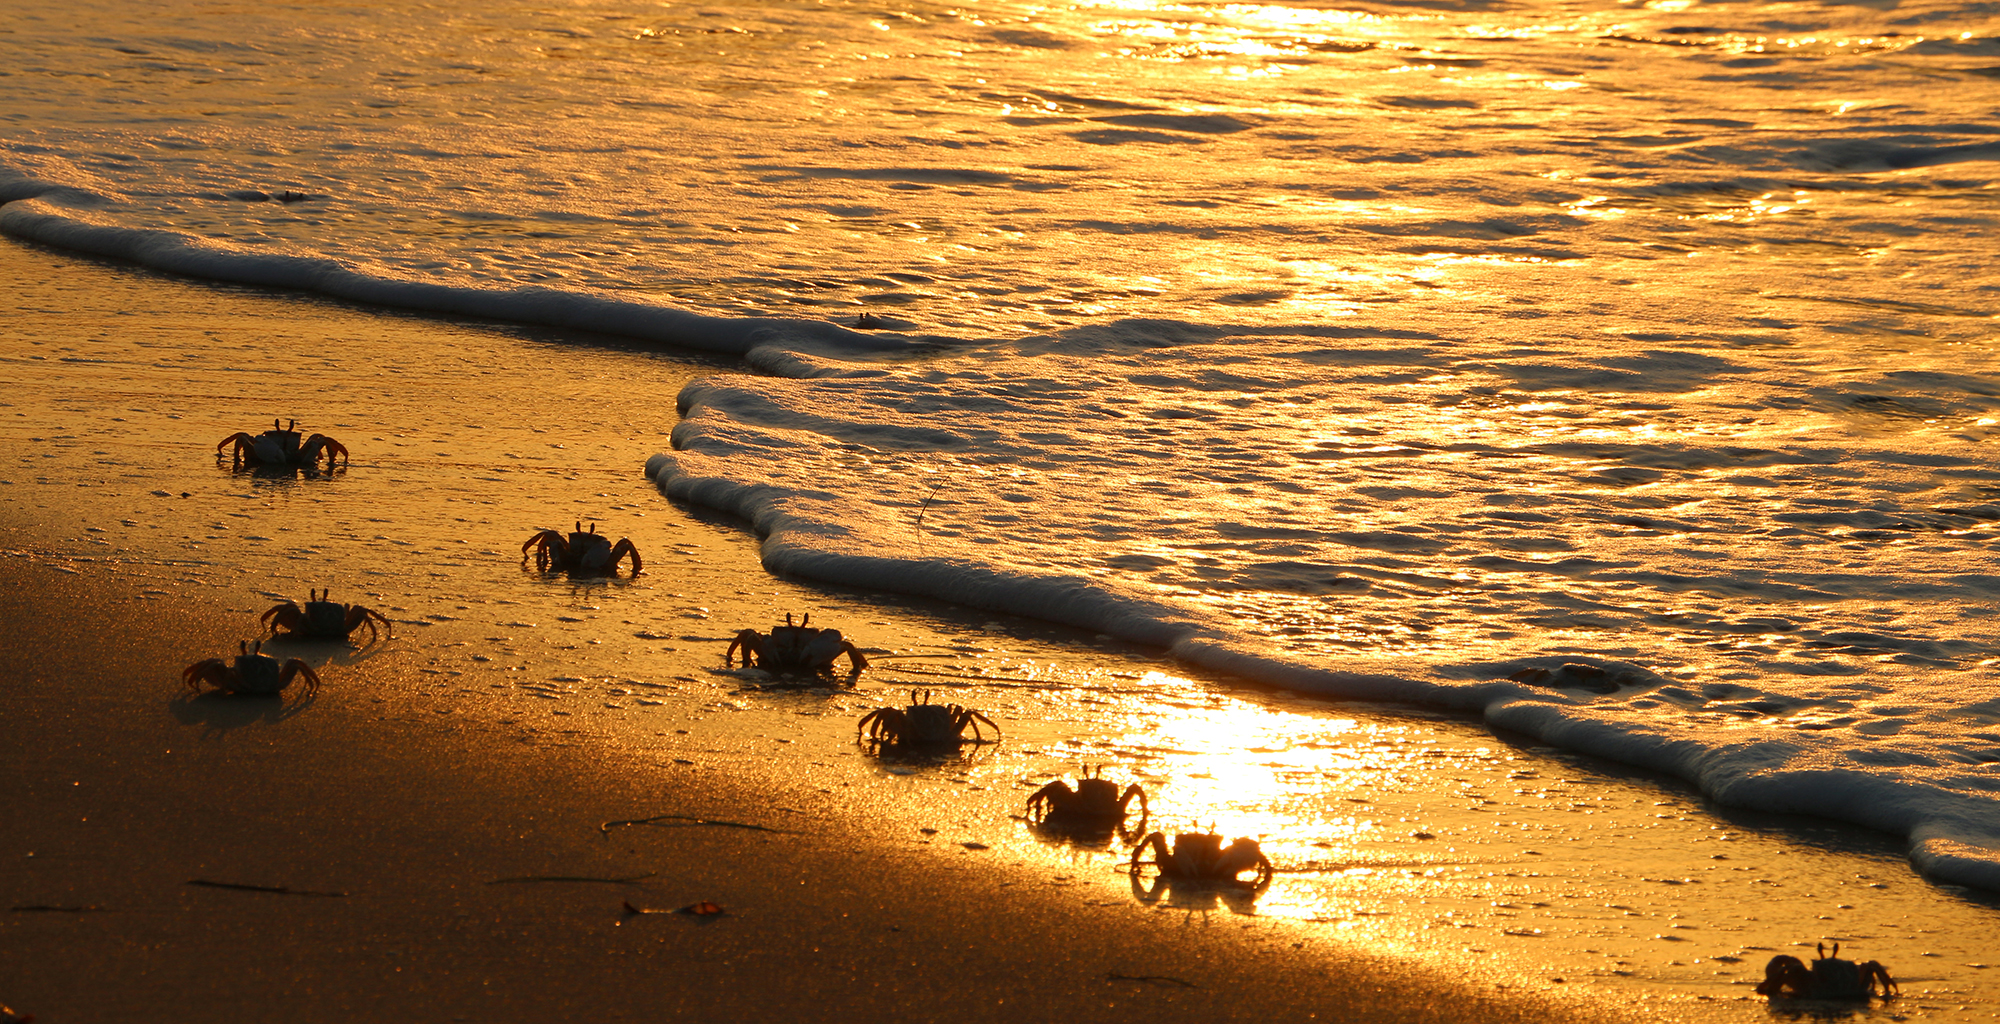 Madagascar-Anjajavy-Crabs-on-Beach